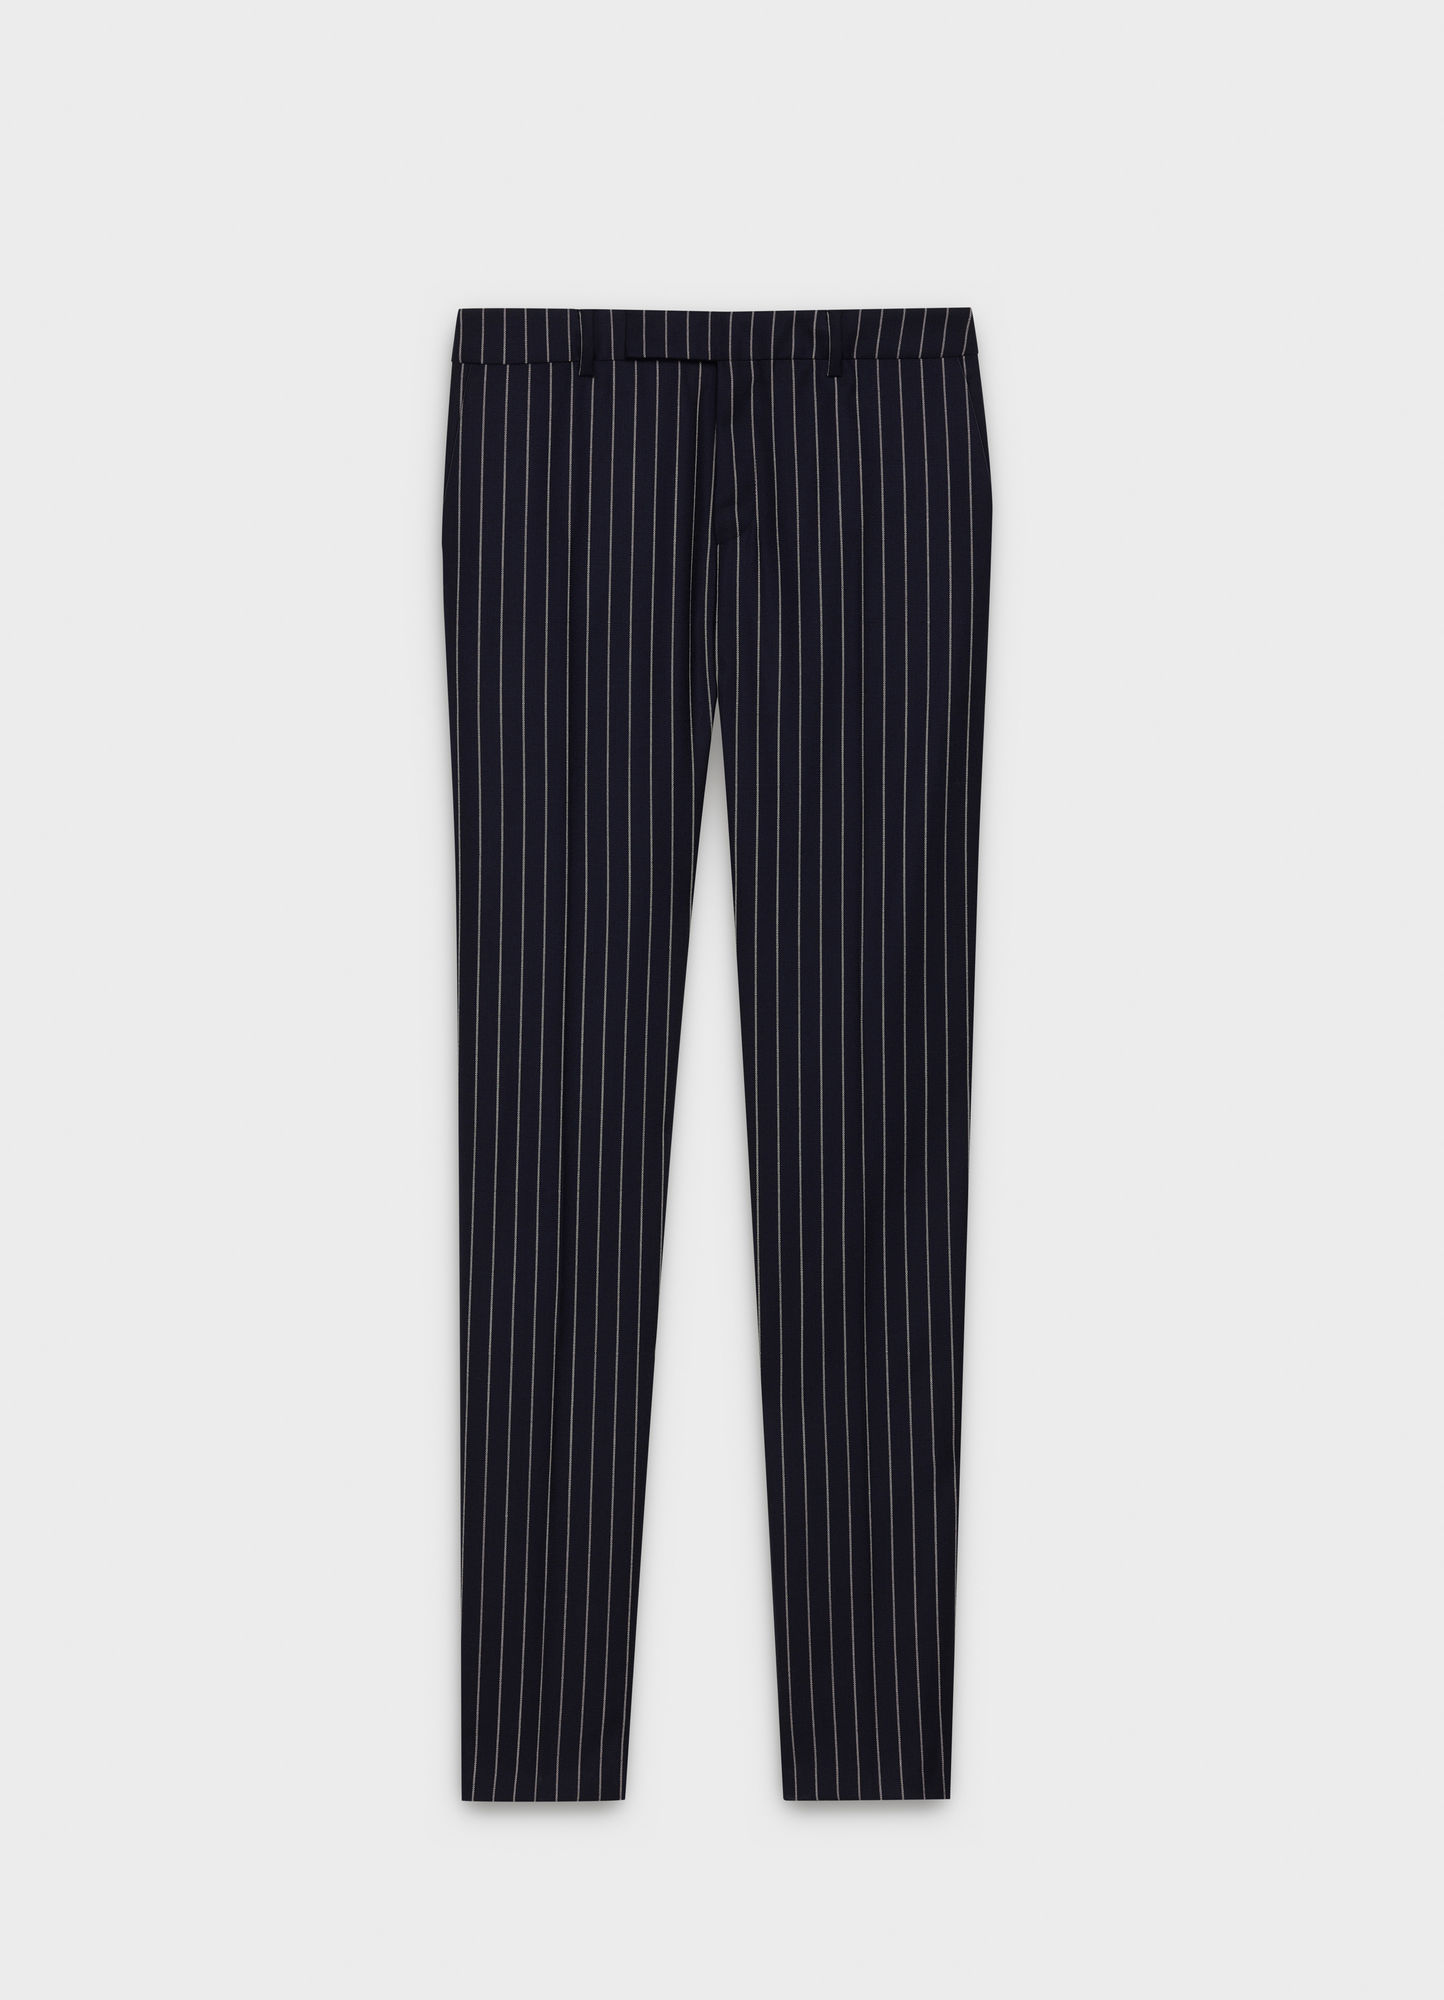 CLASSIC PANTS IN TENNIS STRIPED WOOL   960 USD